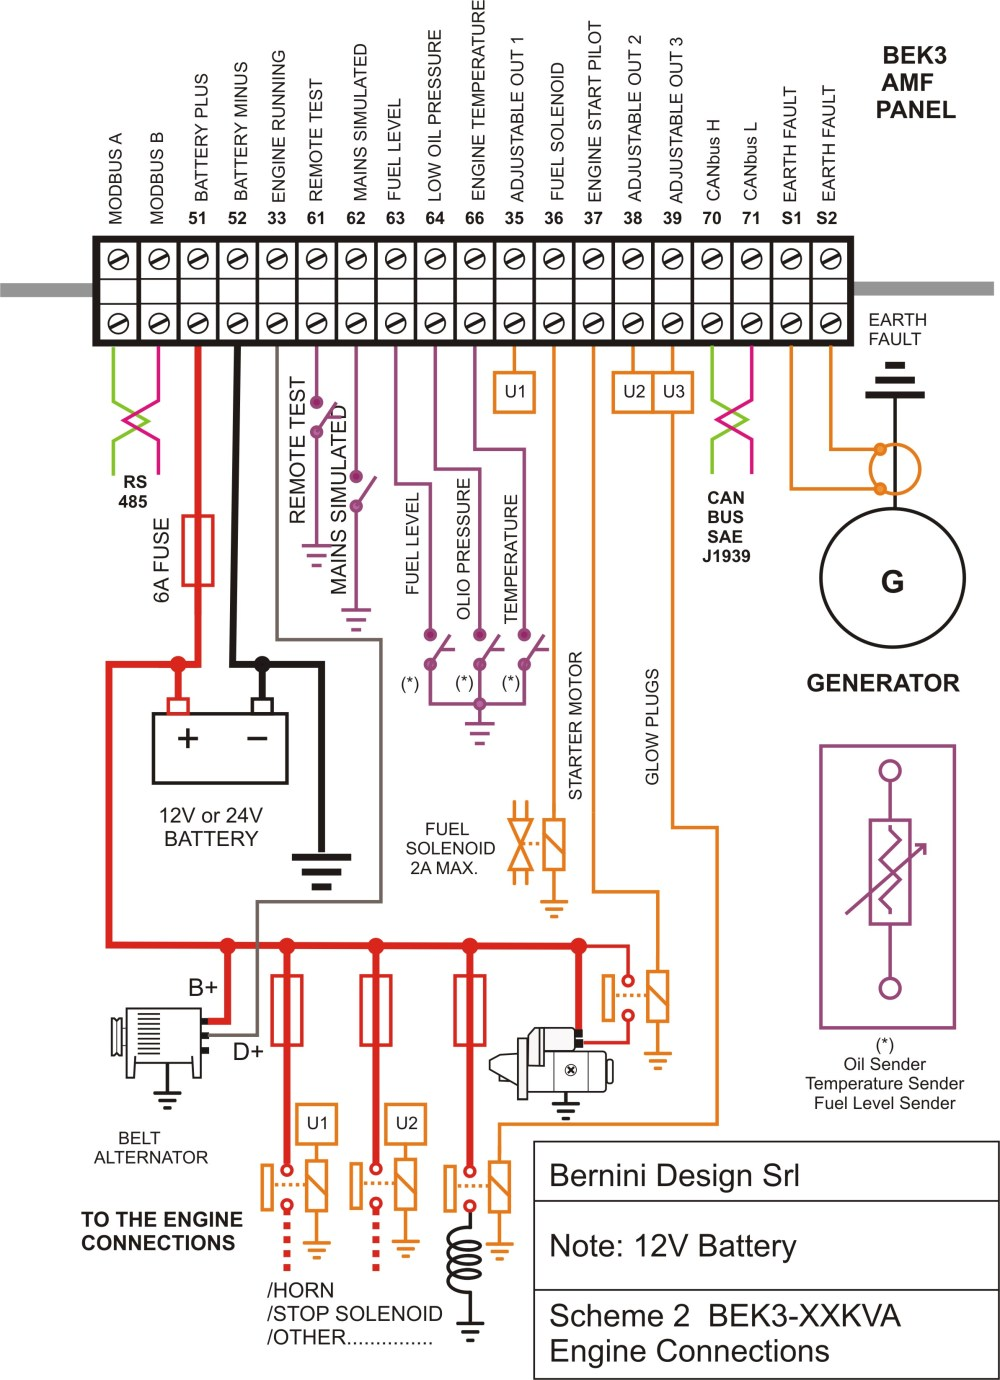 medium resolution of generator wiring diagram get free image about wiring diagram science diagrams control circuit board schematic get